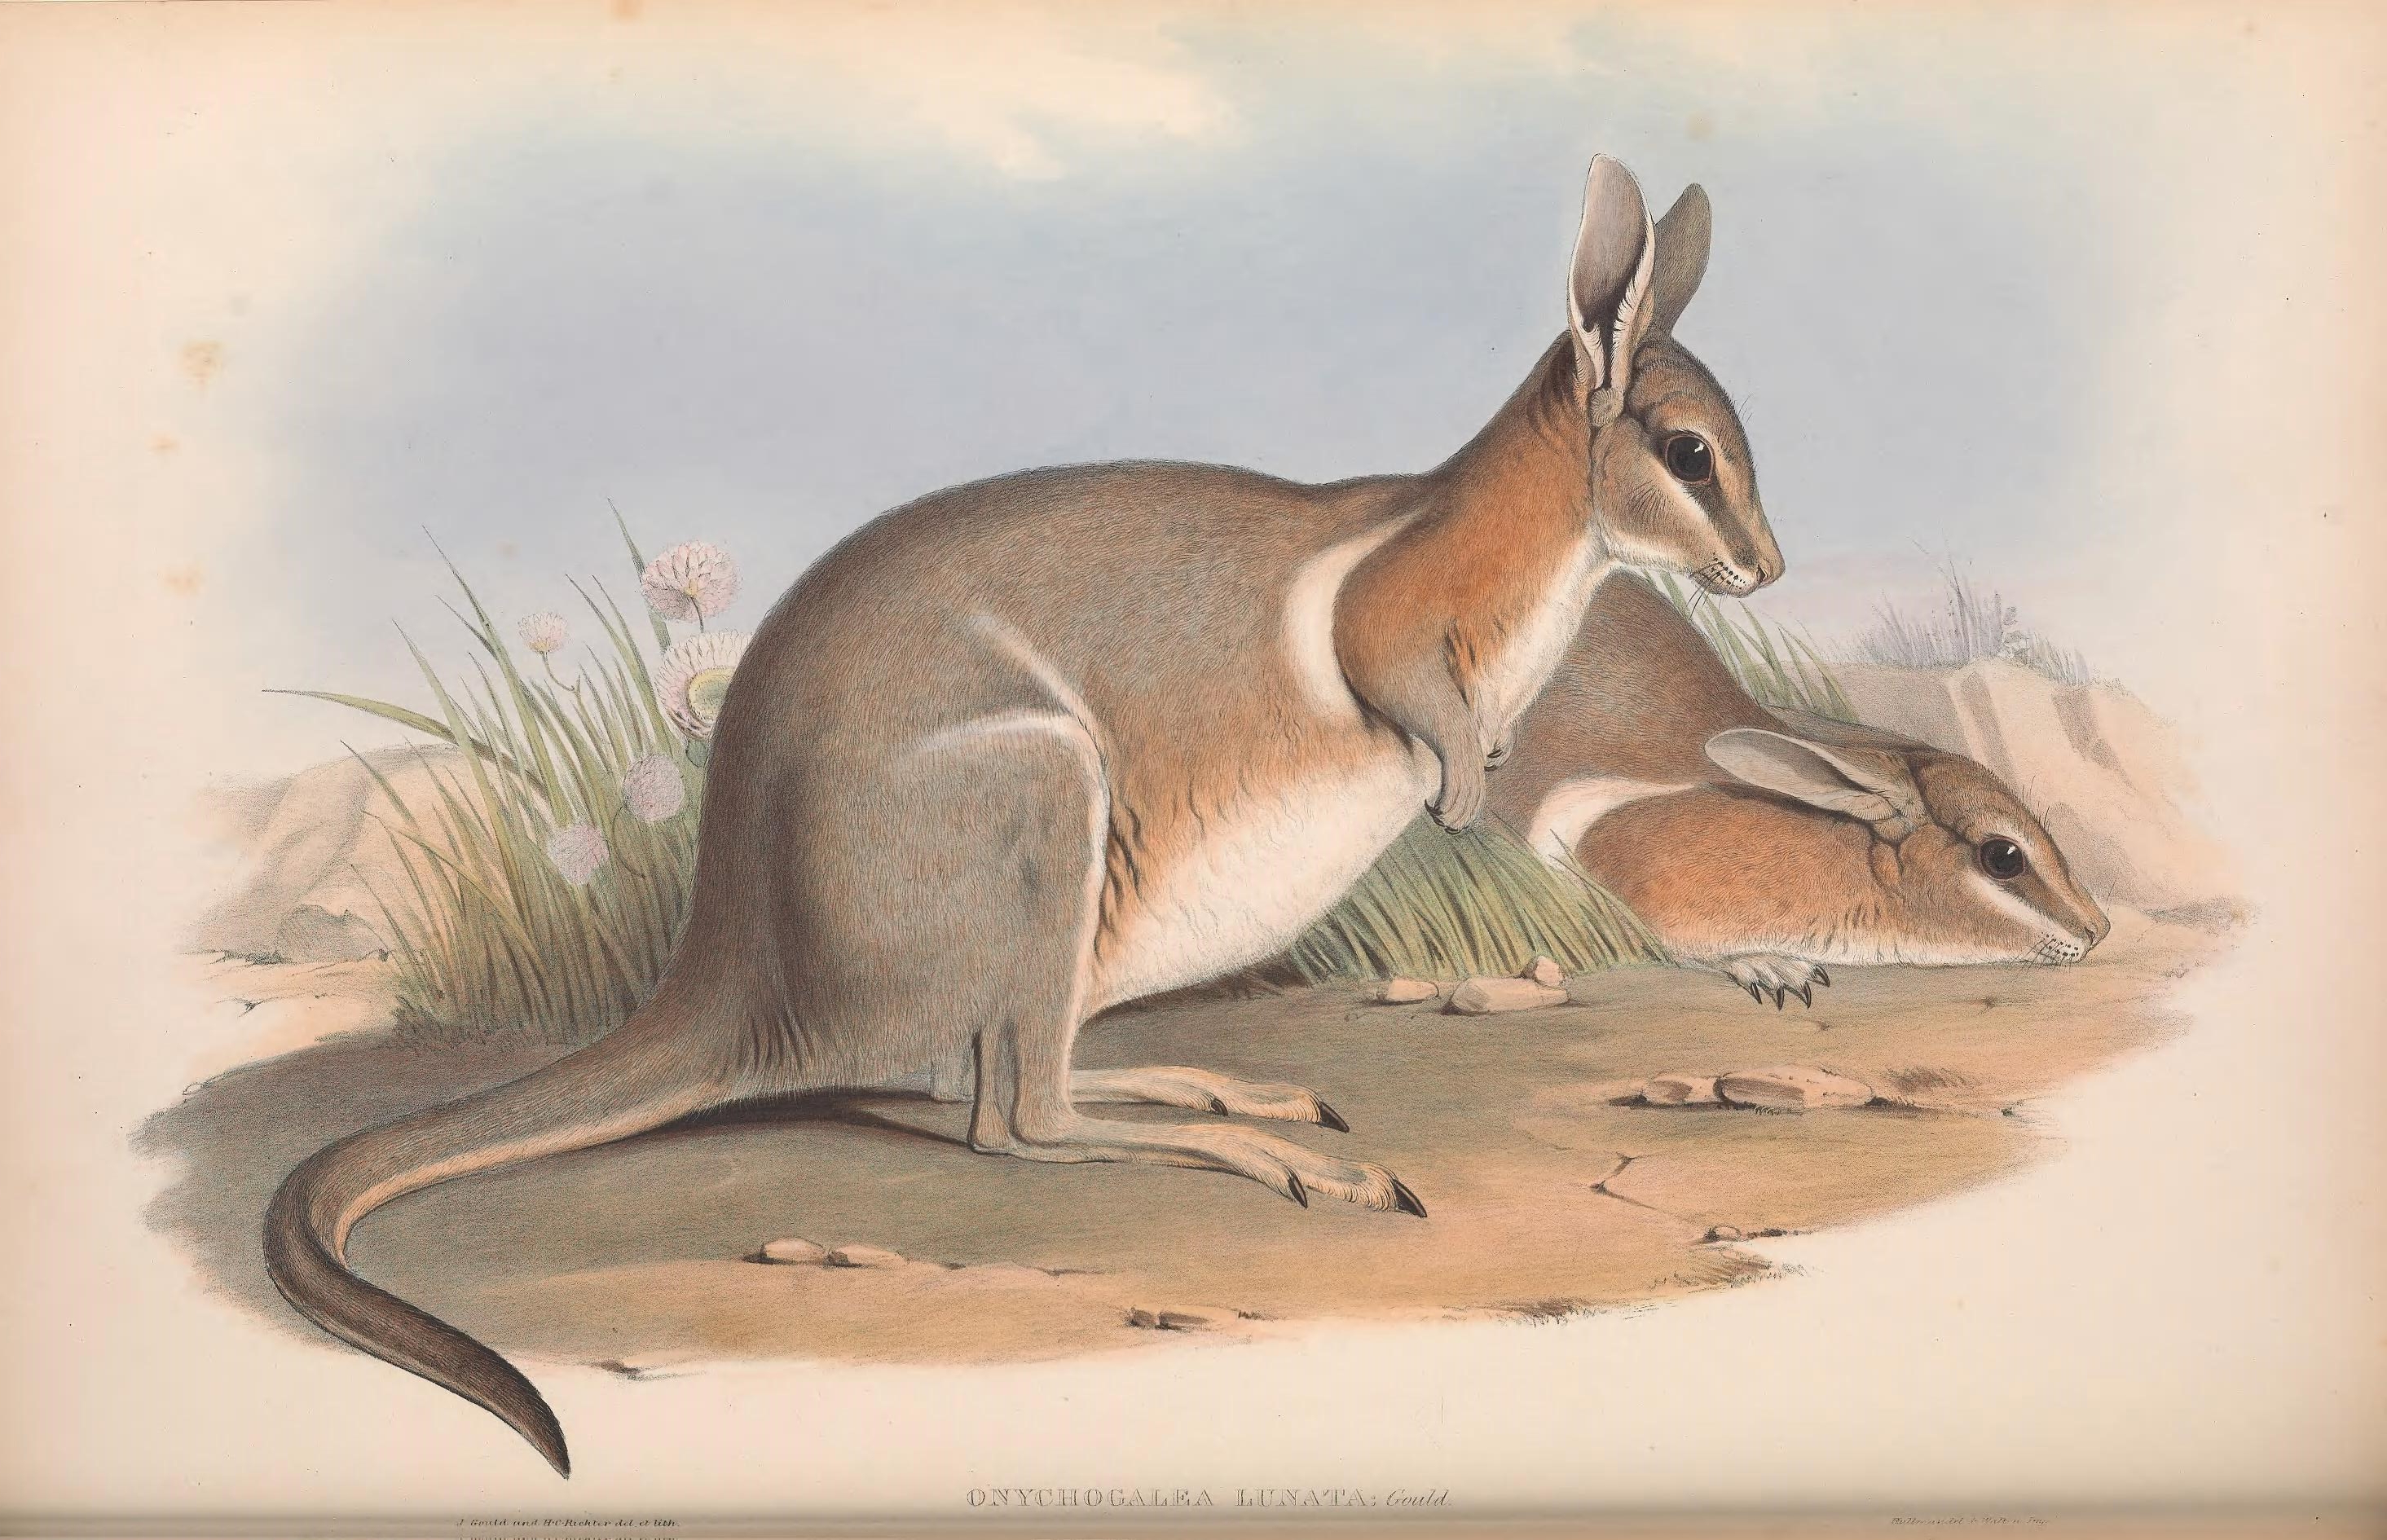 From John Gould's *The Mammals of Australia*, 1863: https://www.biodiversitylibrary.org/page/49740861#page/7/mode/1up